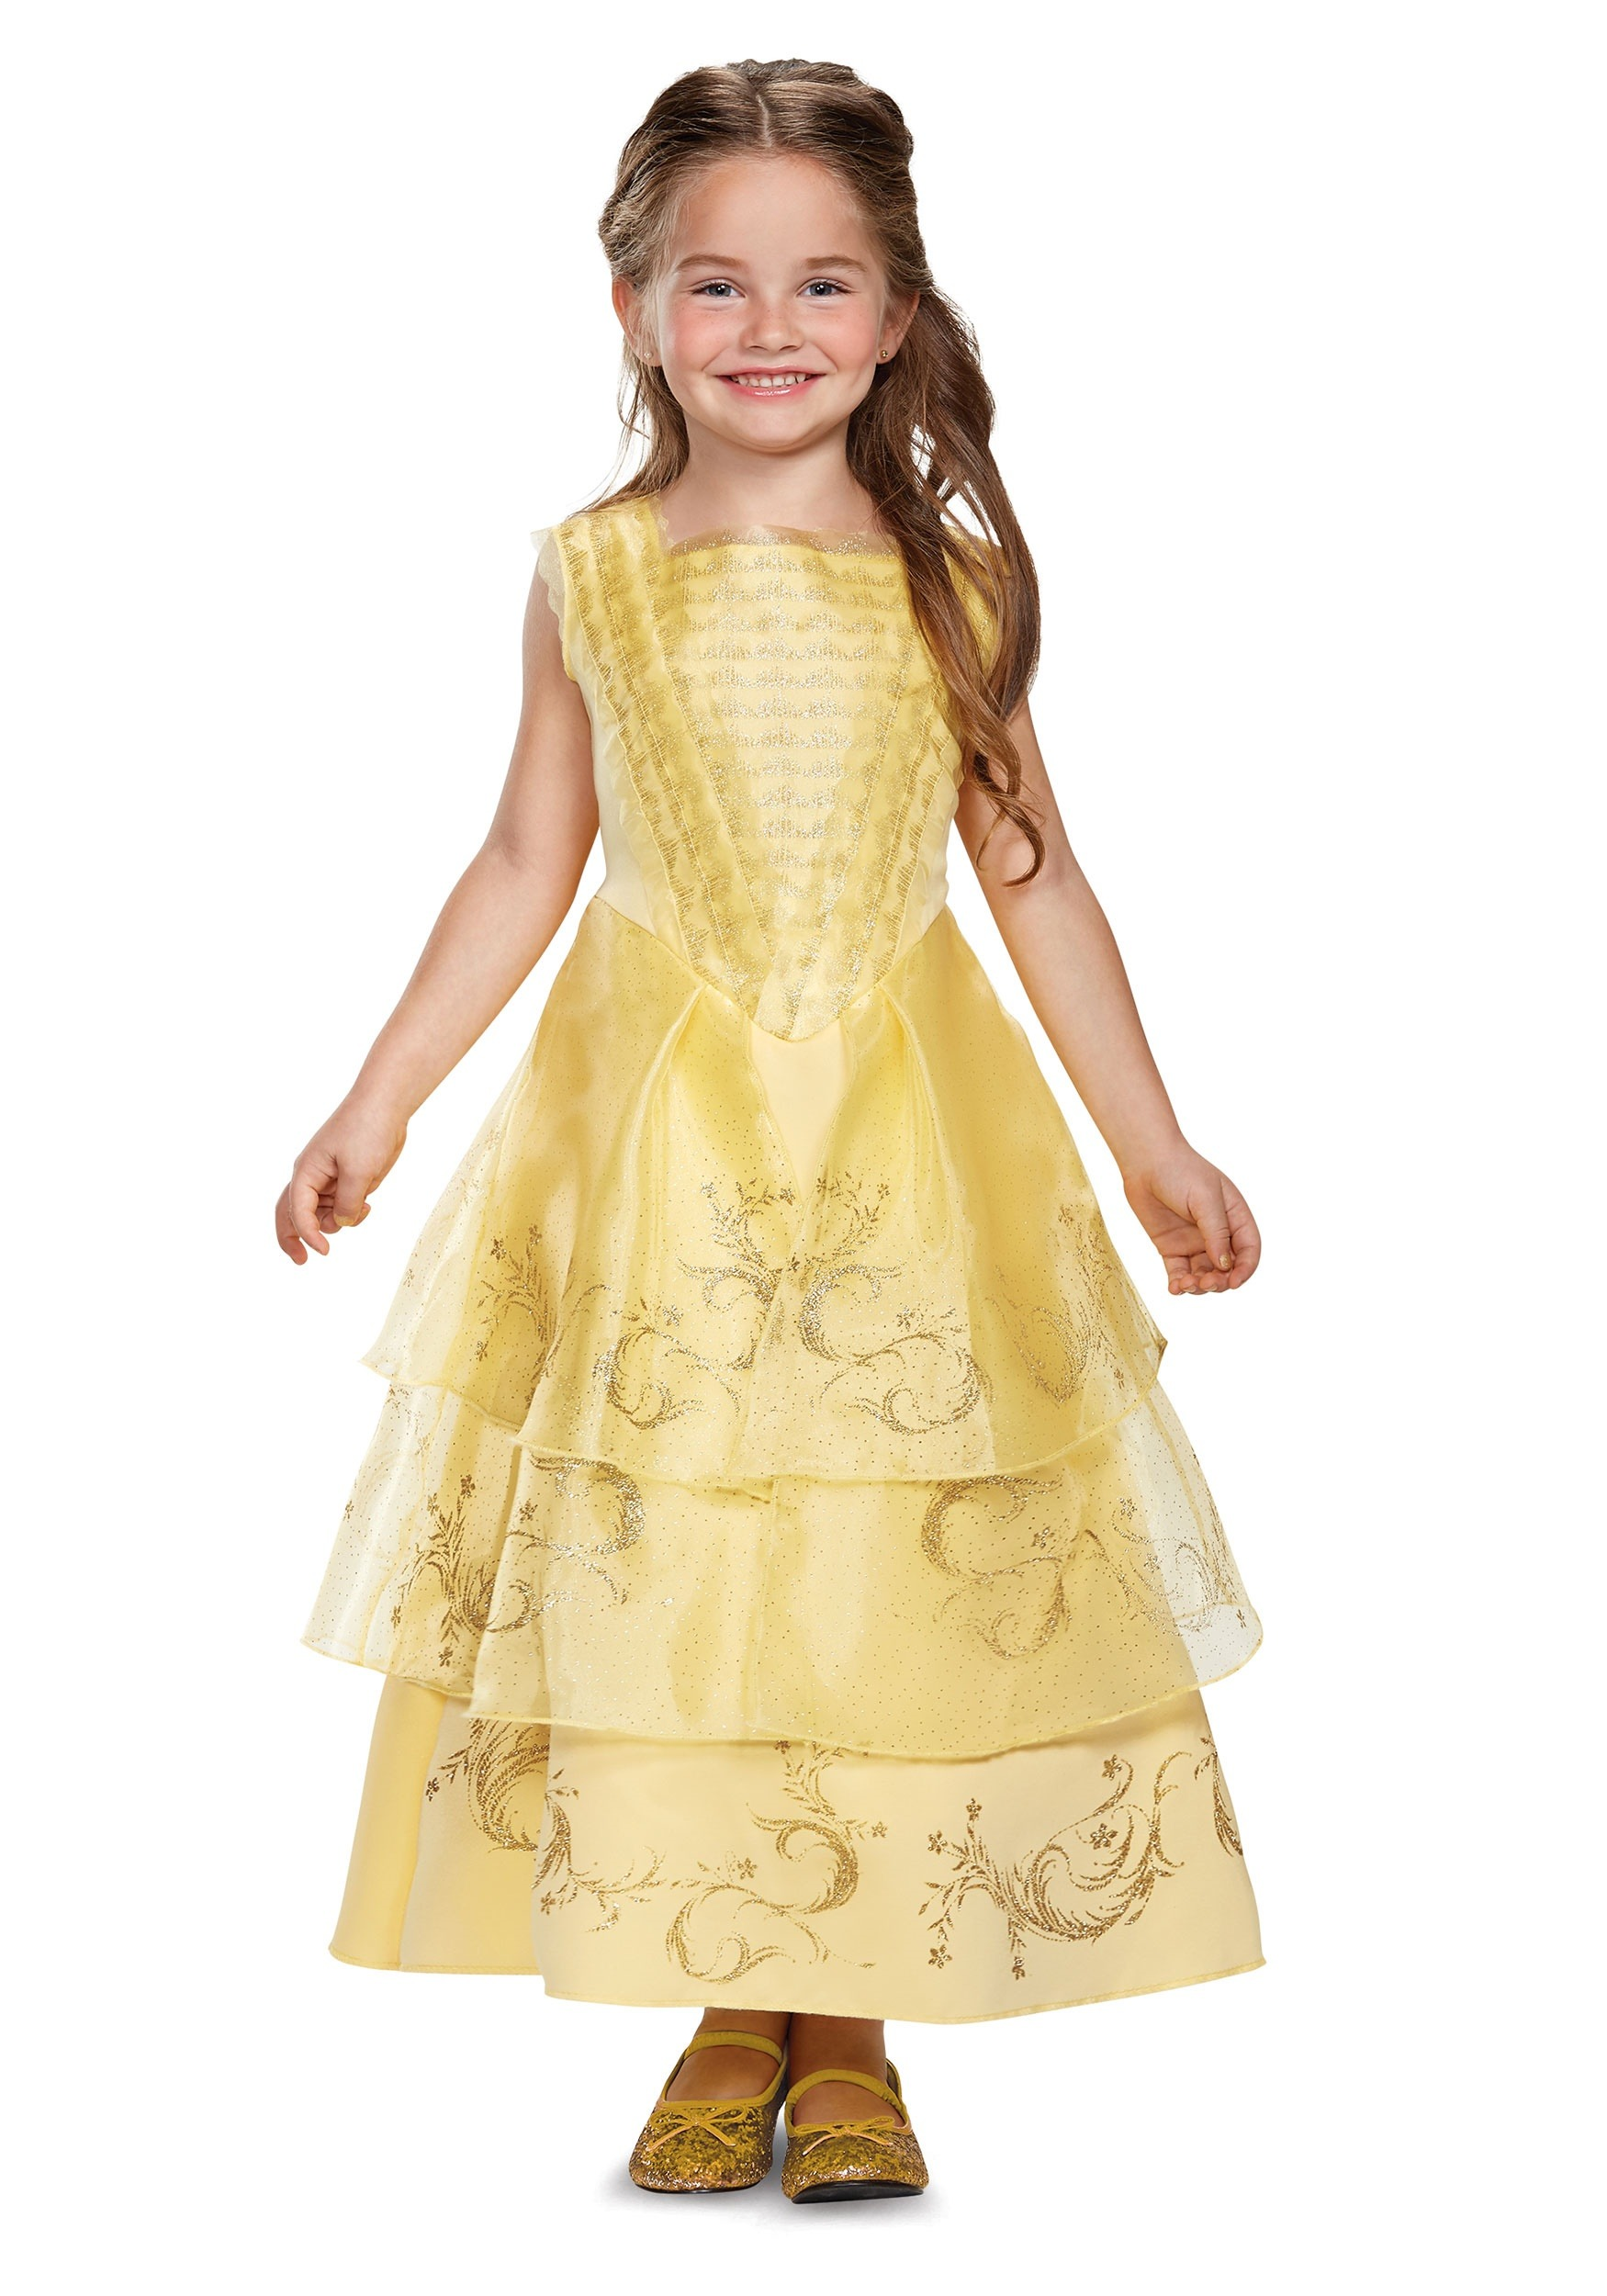 Belle Ball Gown Deluxe Child  sc 1 st  Halloween Costumes : belle gown costume  - Germanpascual.Com